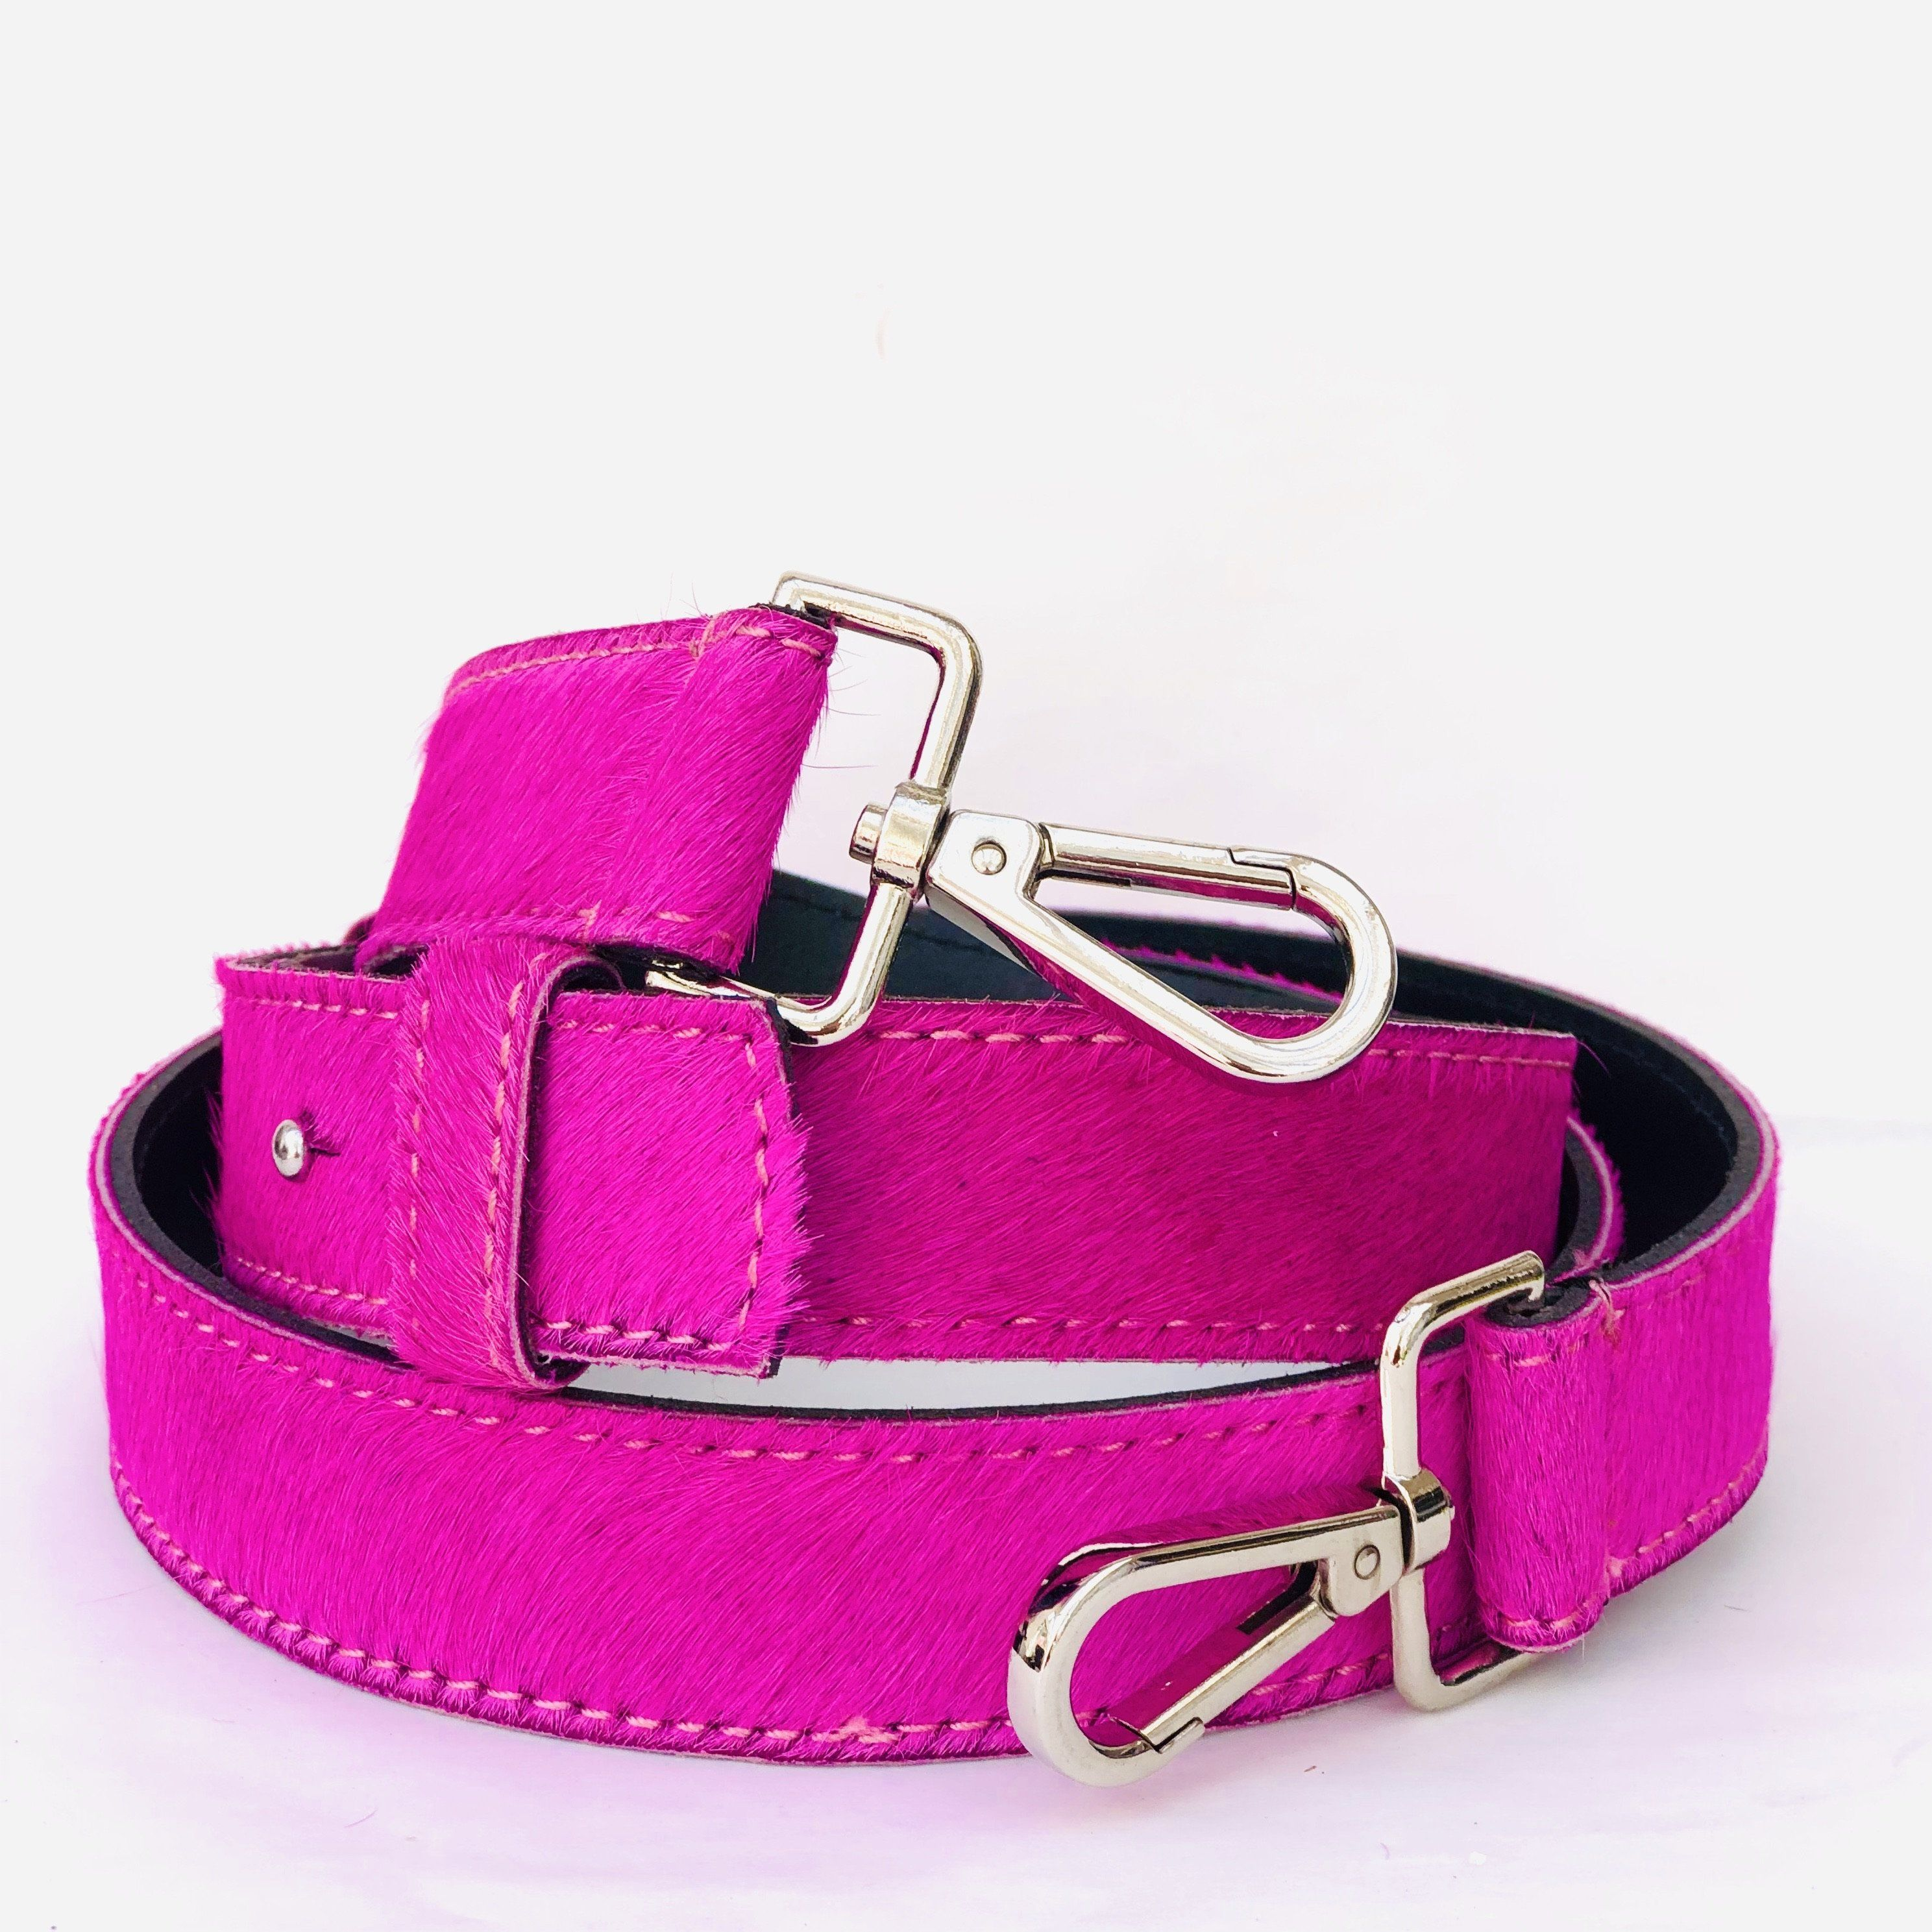 Neon Pink Hair On Hide Leather Crossbody Bag Replacement Strap